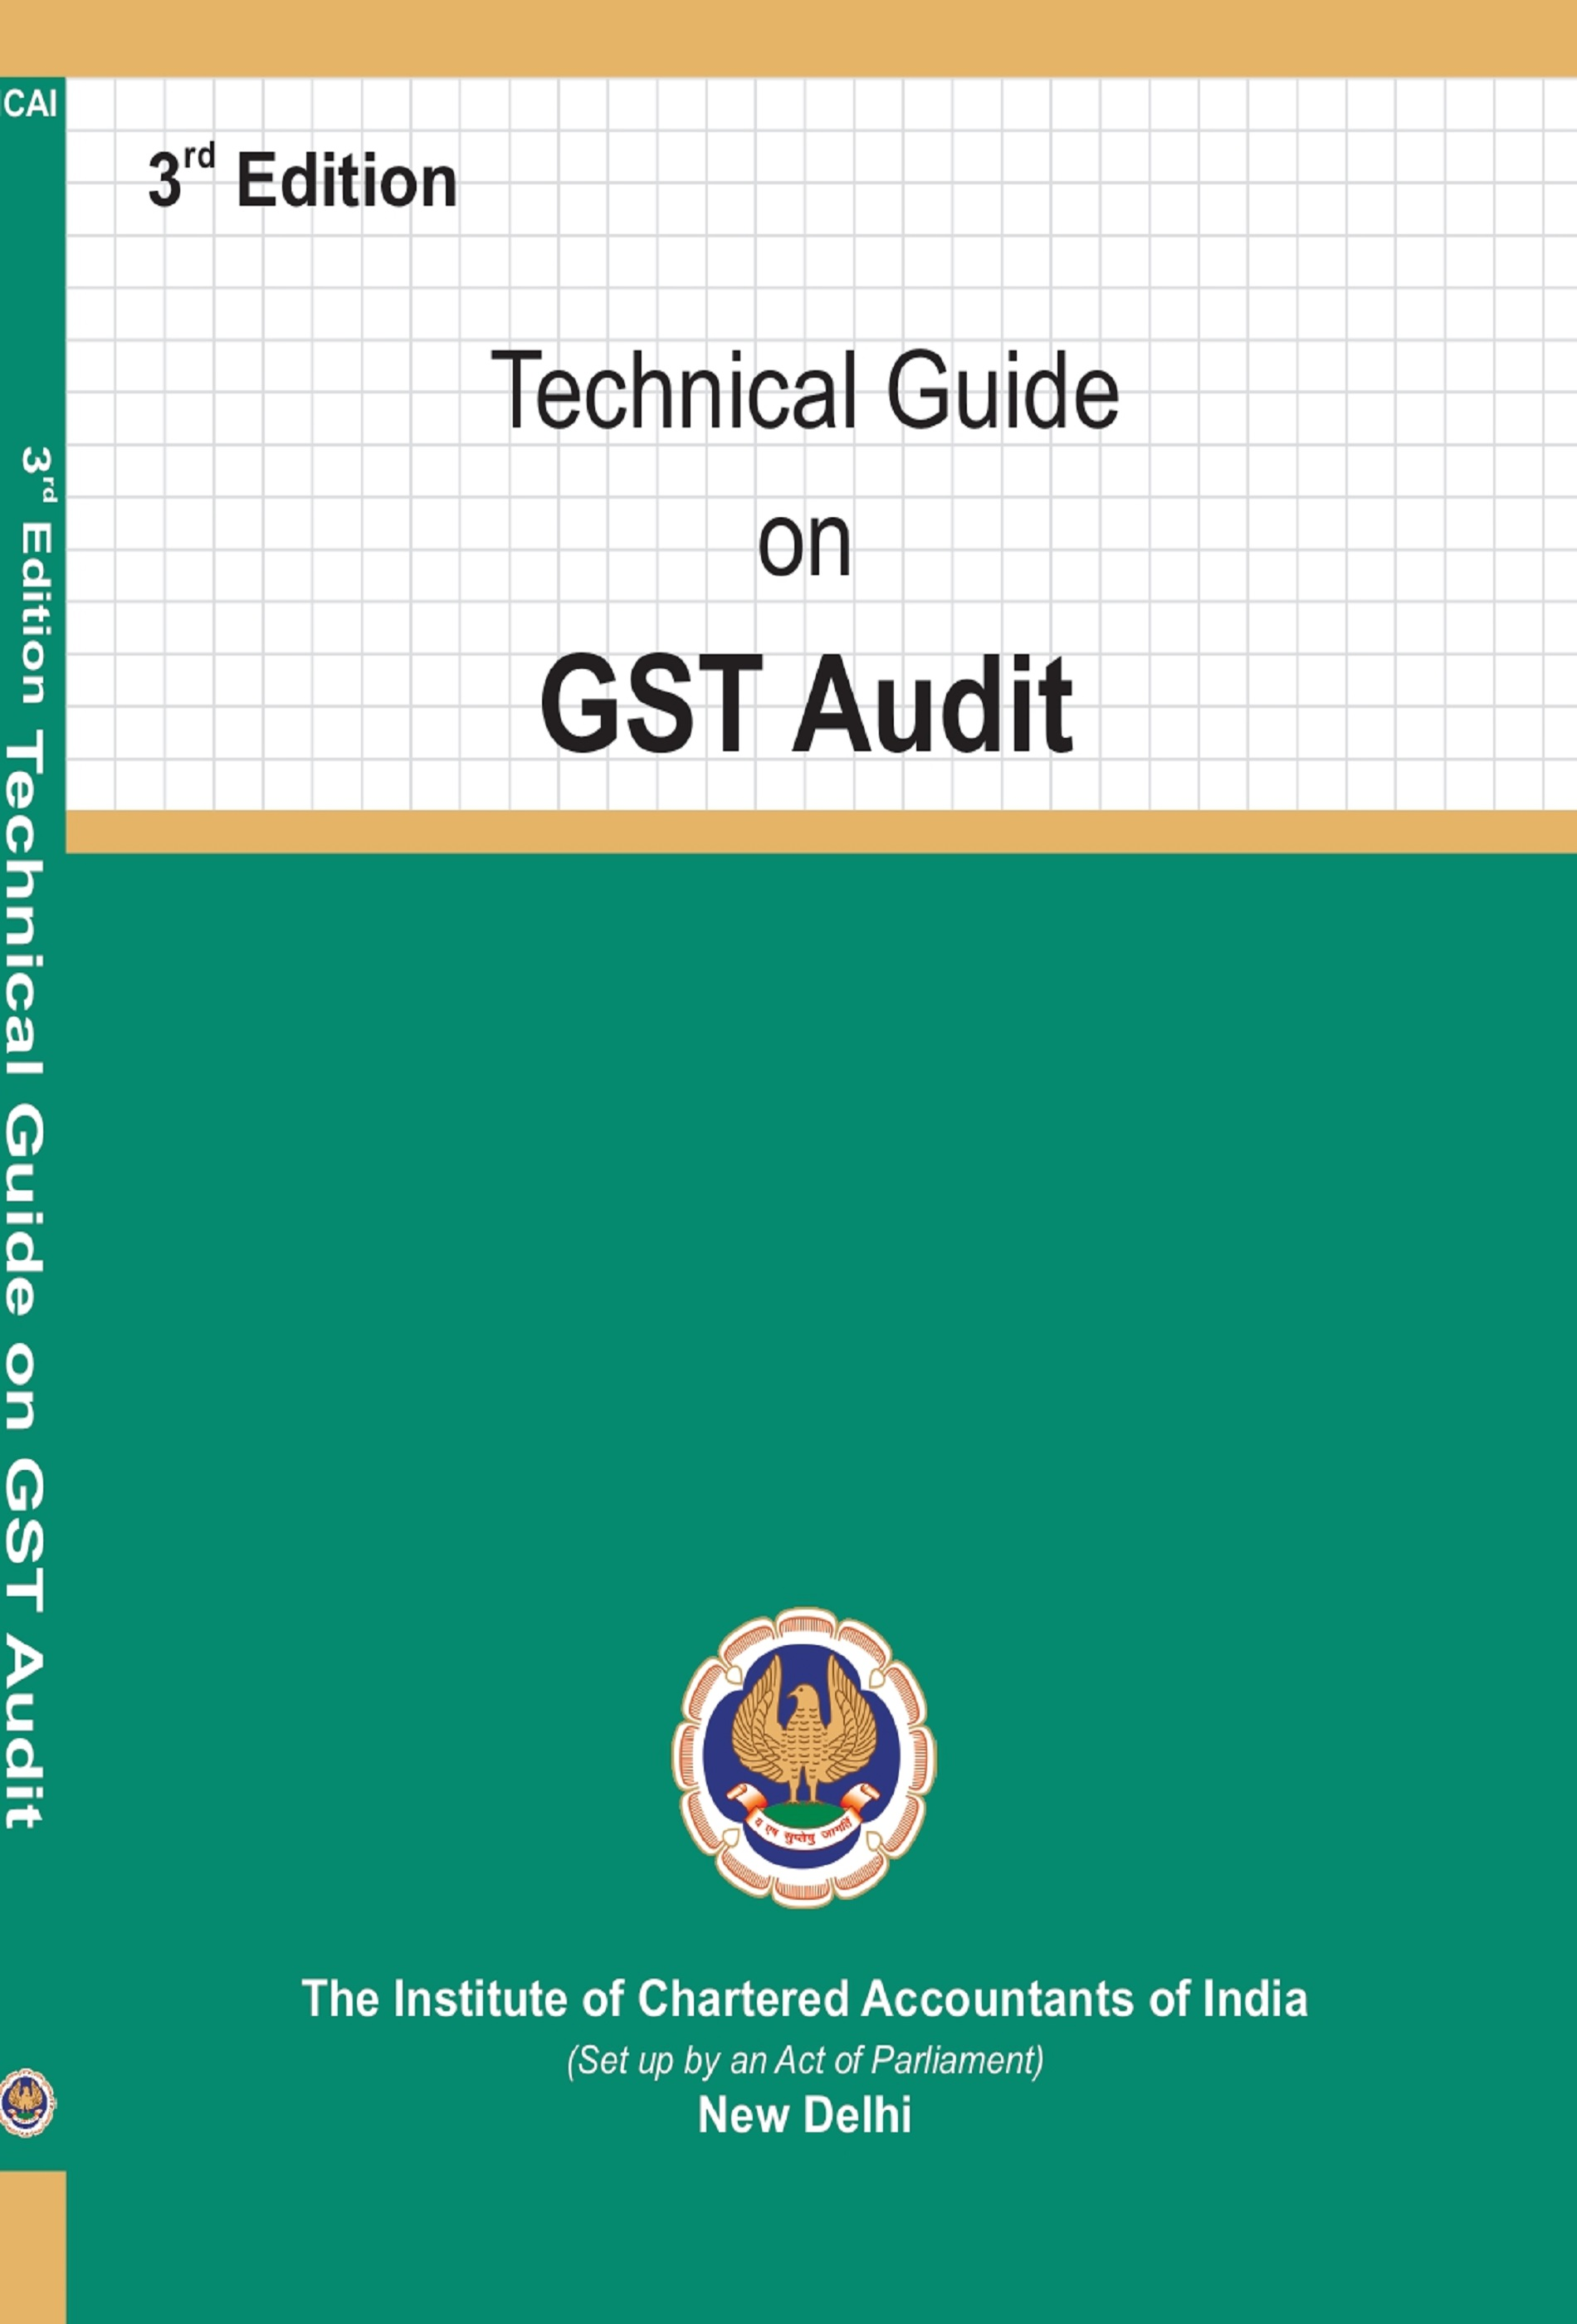 Technical Guide on GST Audit (January, 2021)